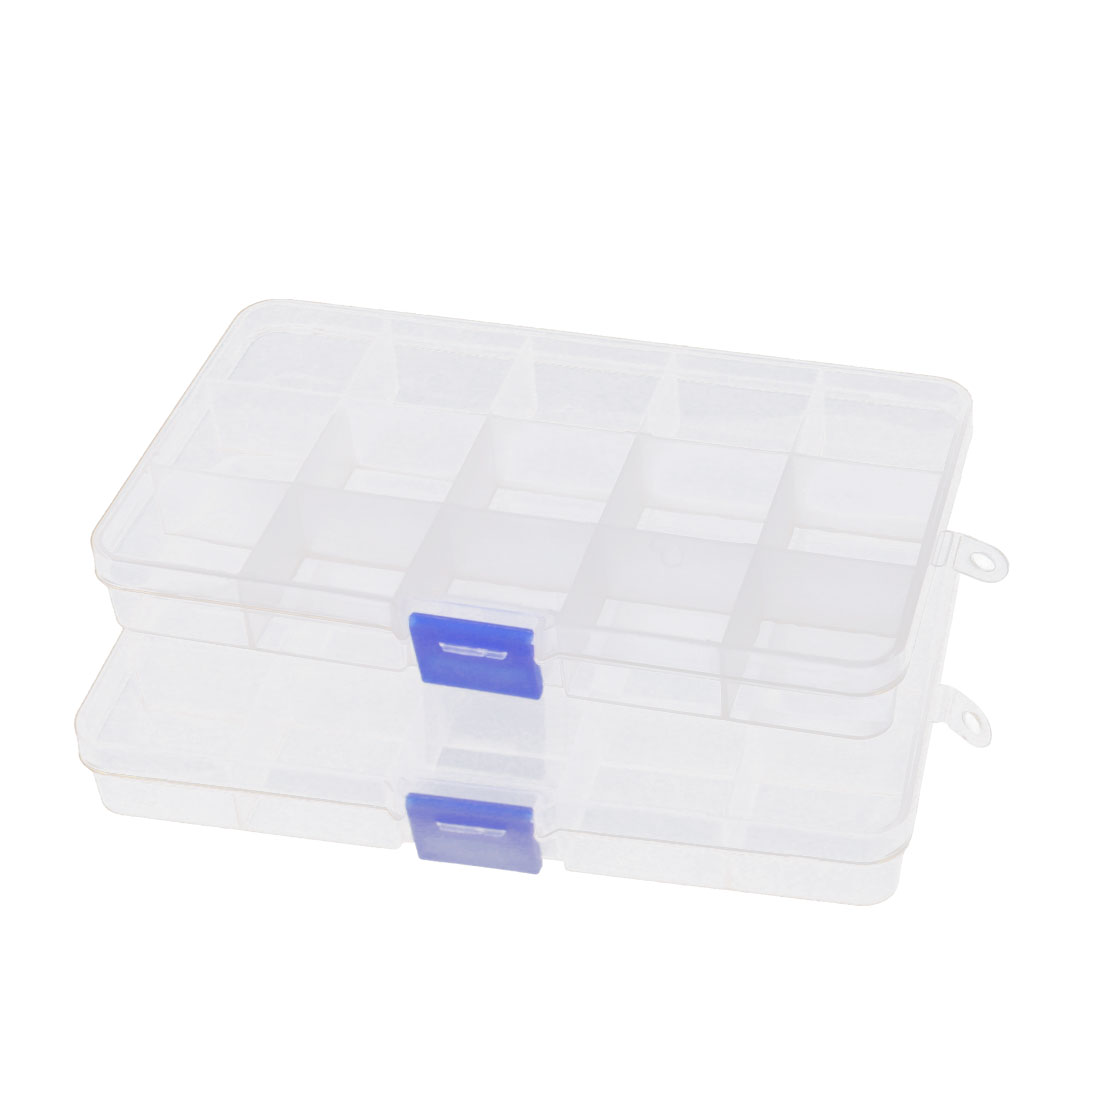 Clear Plastic 15 Slots Components Jewelry Craft Organizer Storage Case Box 2 Pcs